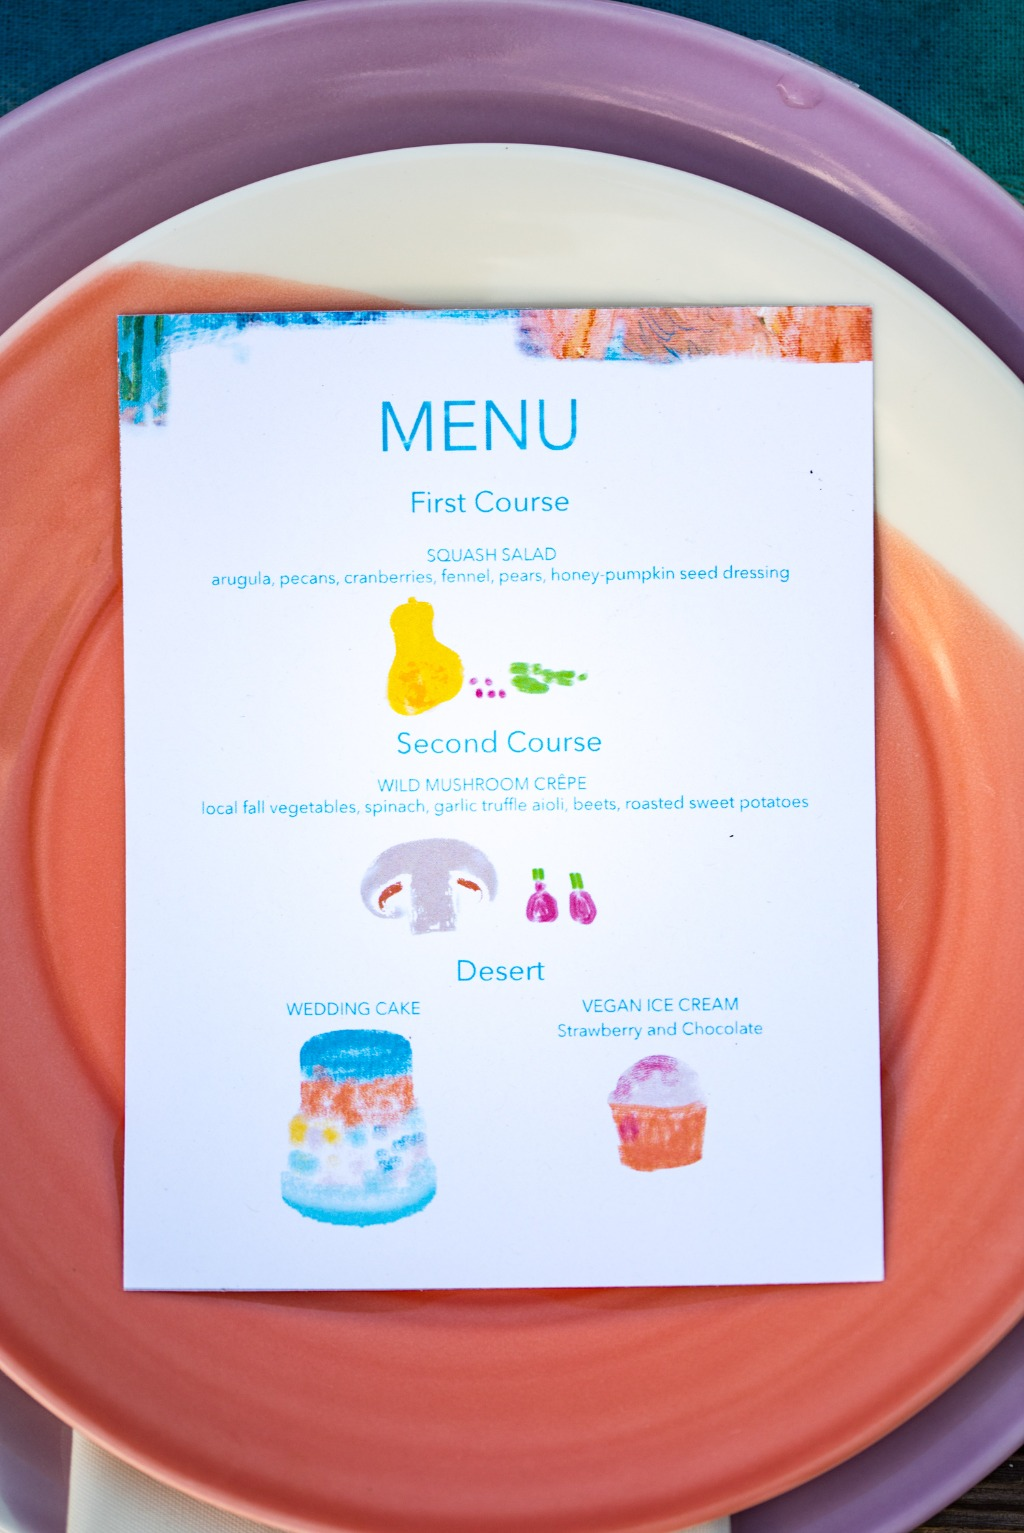 The menu cards for this artistic vow renewal had painted illustrations by a local artist on them to add in whimsical pops of color